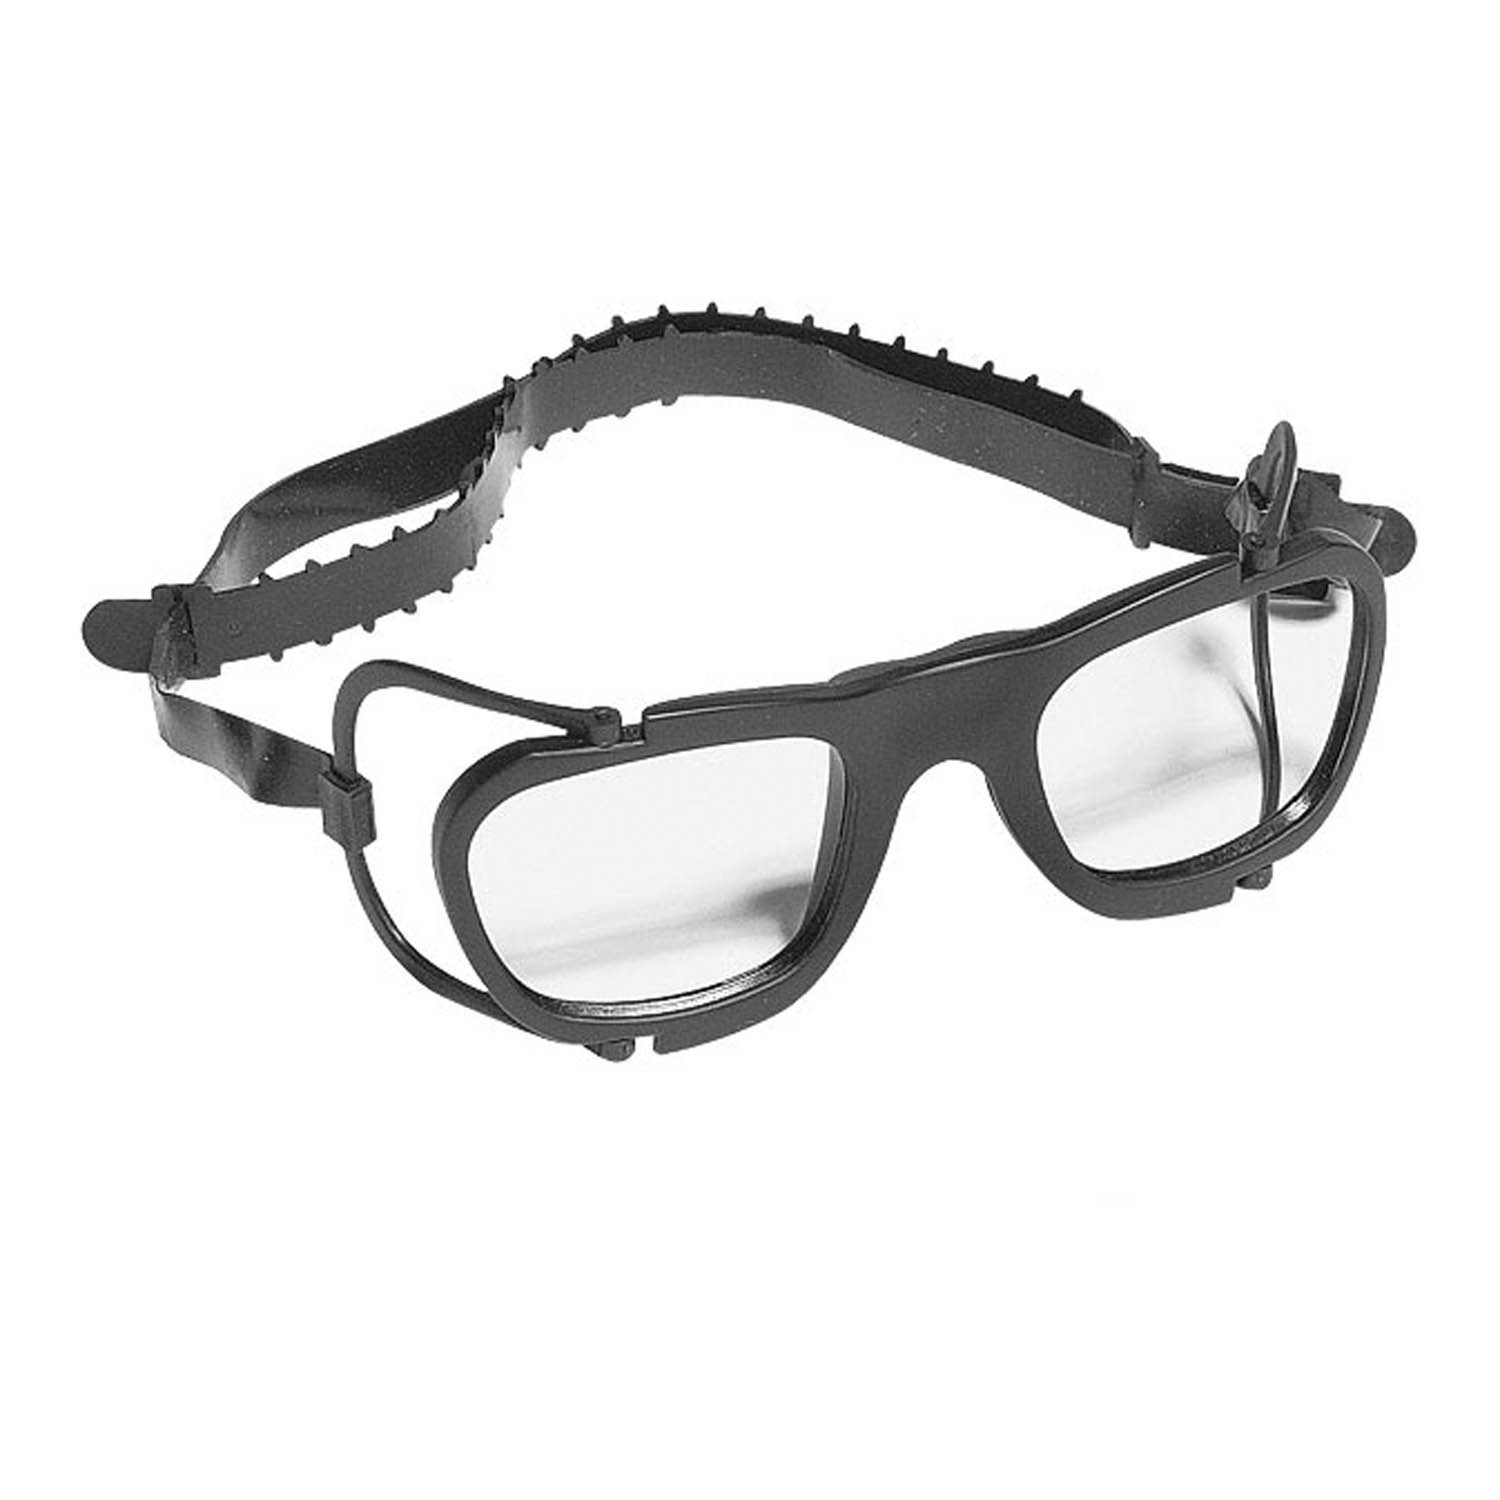 Criss Optical Combat Eyeglass Frames